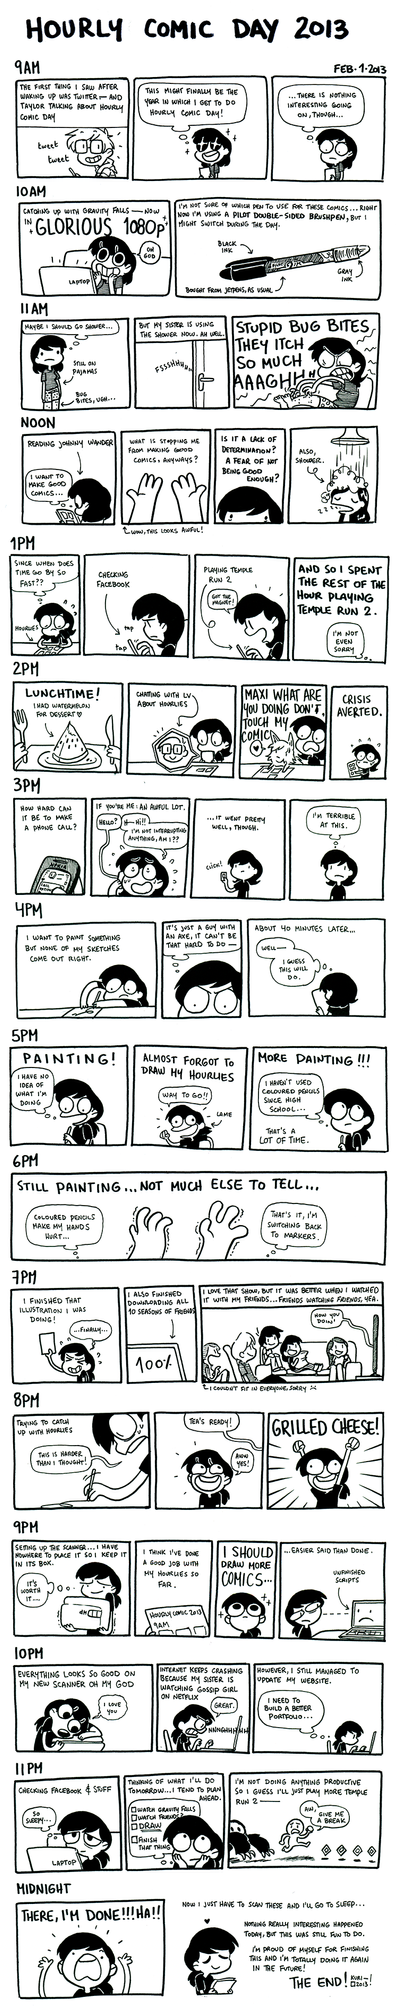 Hourly Comic Day 2013 by kurisquare